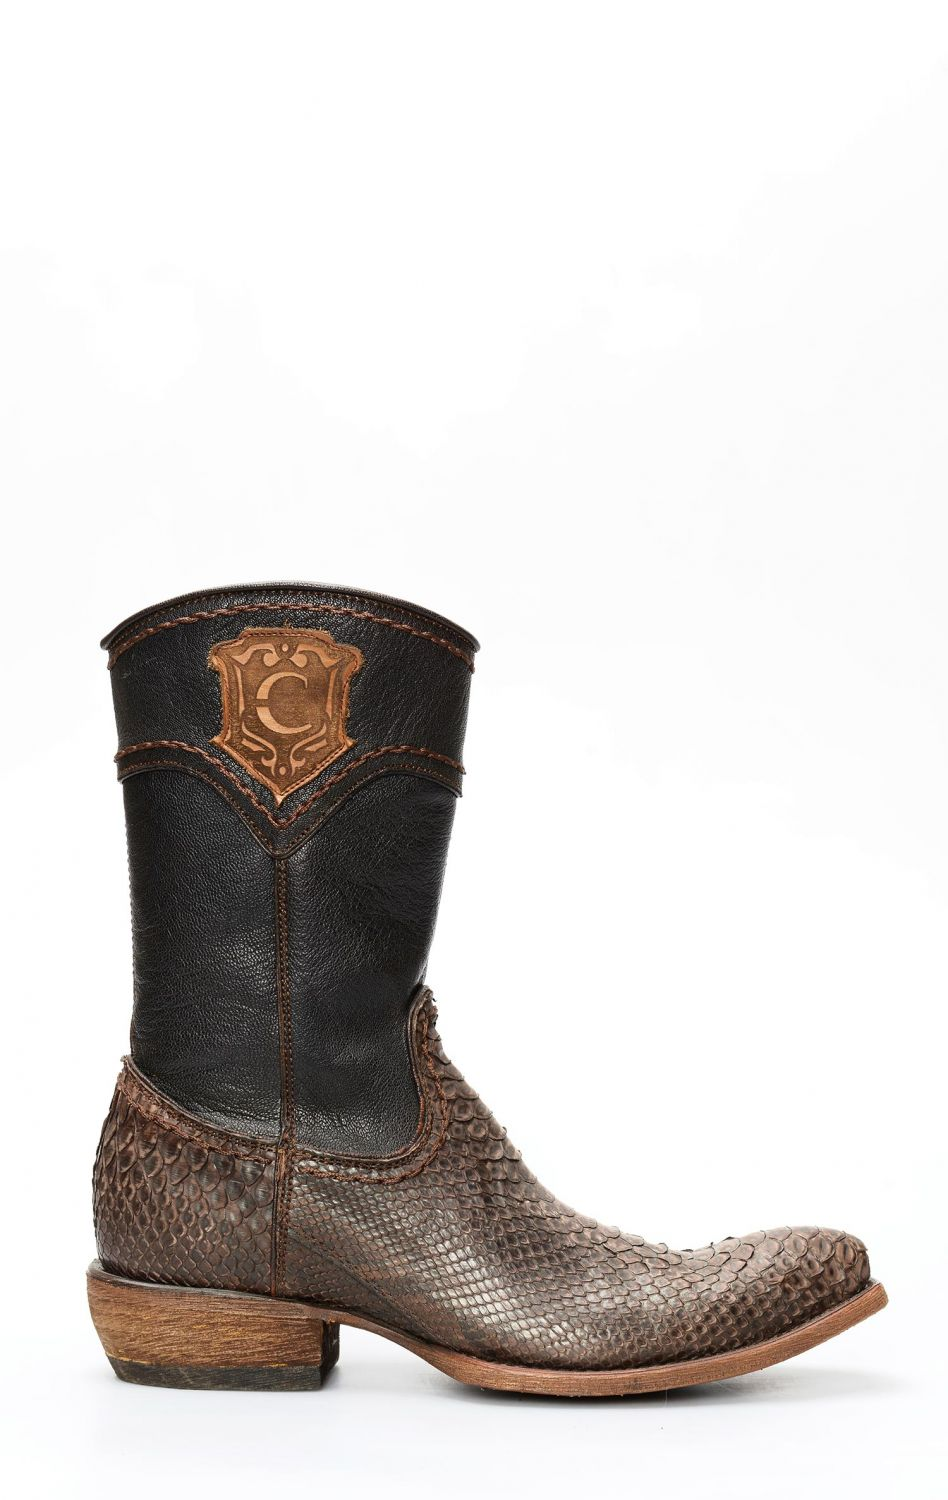 f5192aa7359 Cuadra ankle boot in opaque brown python leather and zipper | 2D02PHFB